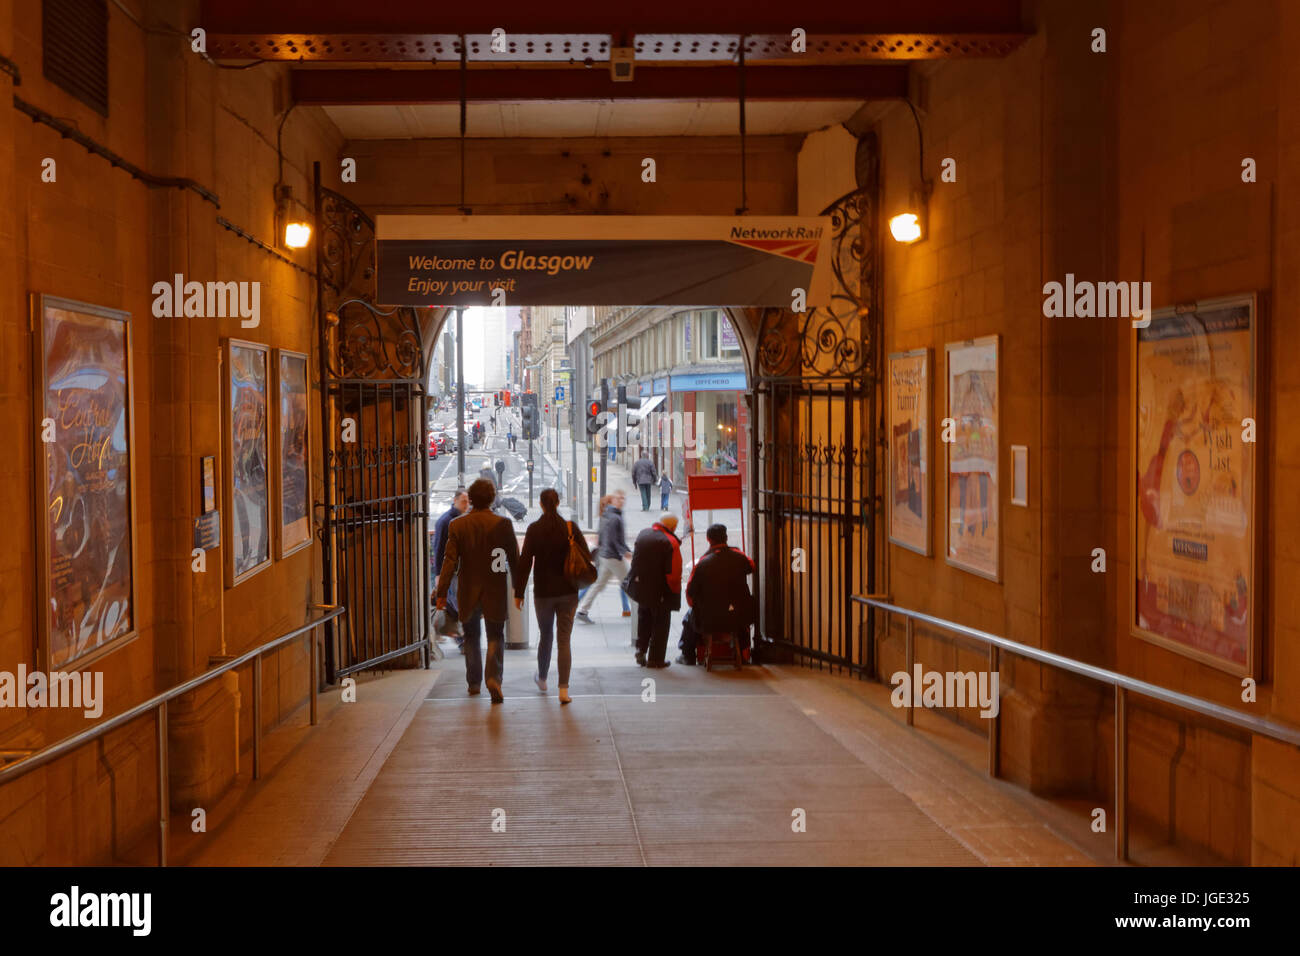 newspaper vendor entrance exit to Glasgow central  train railway station onto hope street - Stock Image